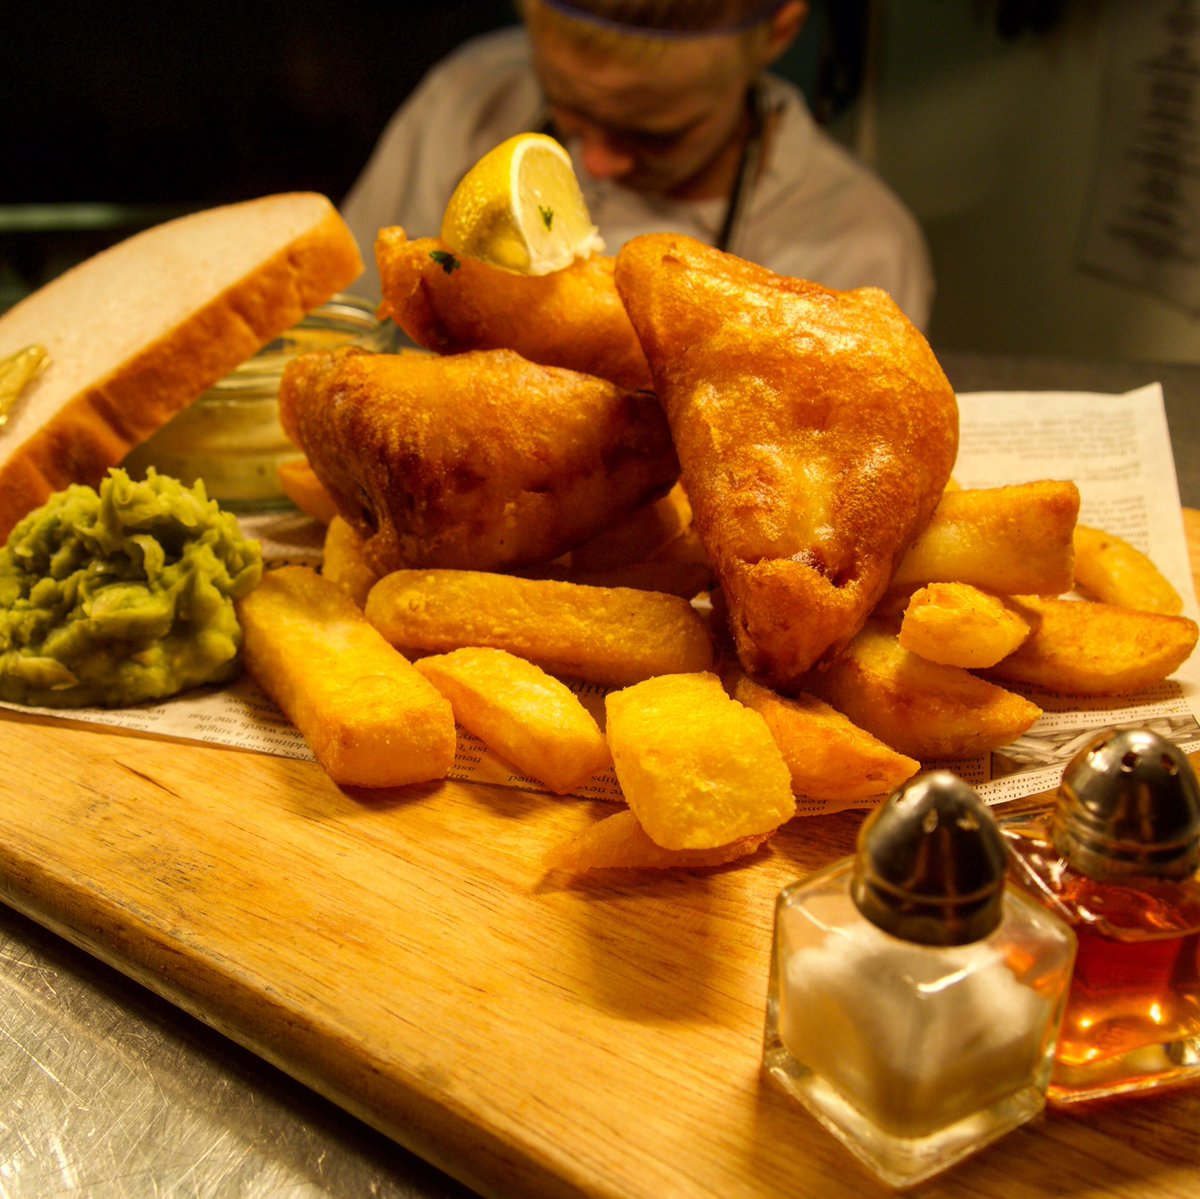 Who's coming for dinner tonight? Pictured is our Not Fish and Chips a.k.a battered halloumi... it's a moreish cheese and carb party on a plate just for you! 🥰🤗🦄